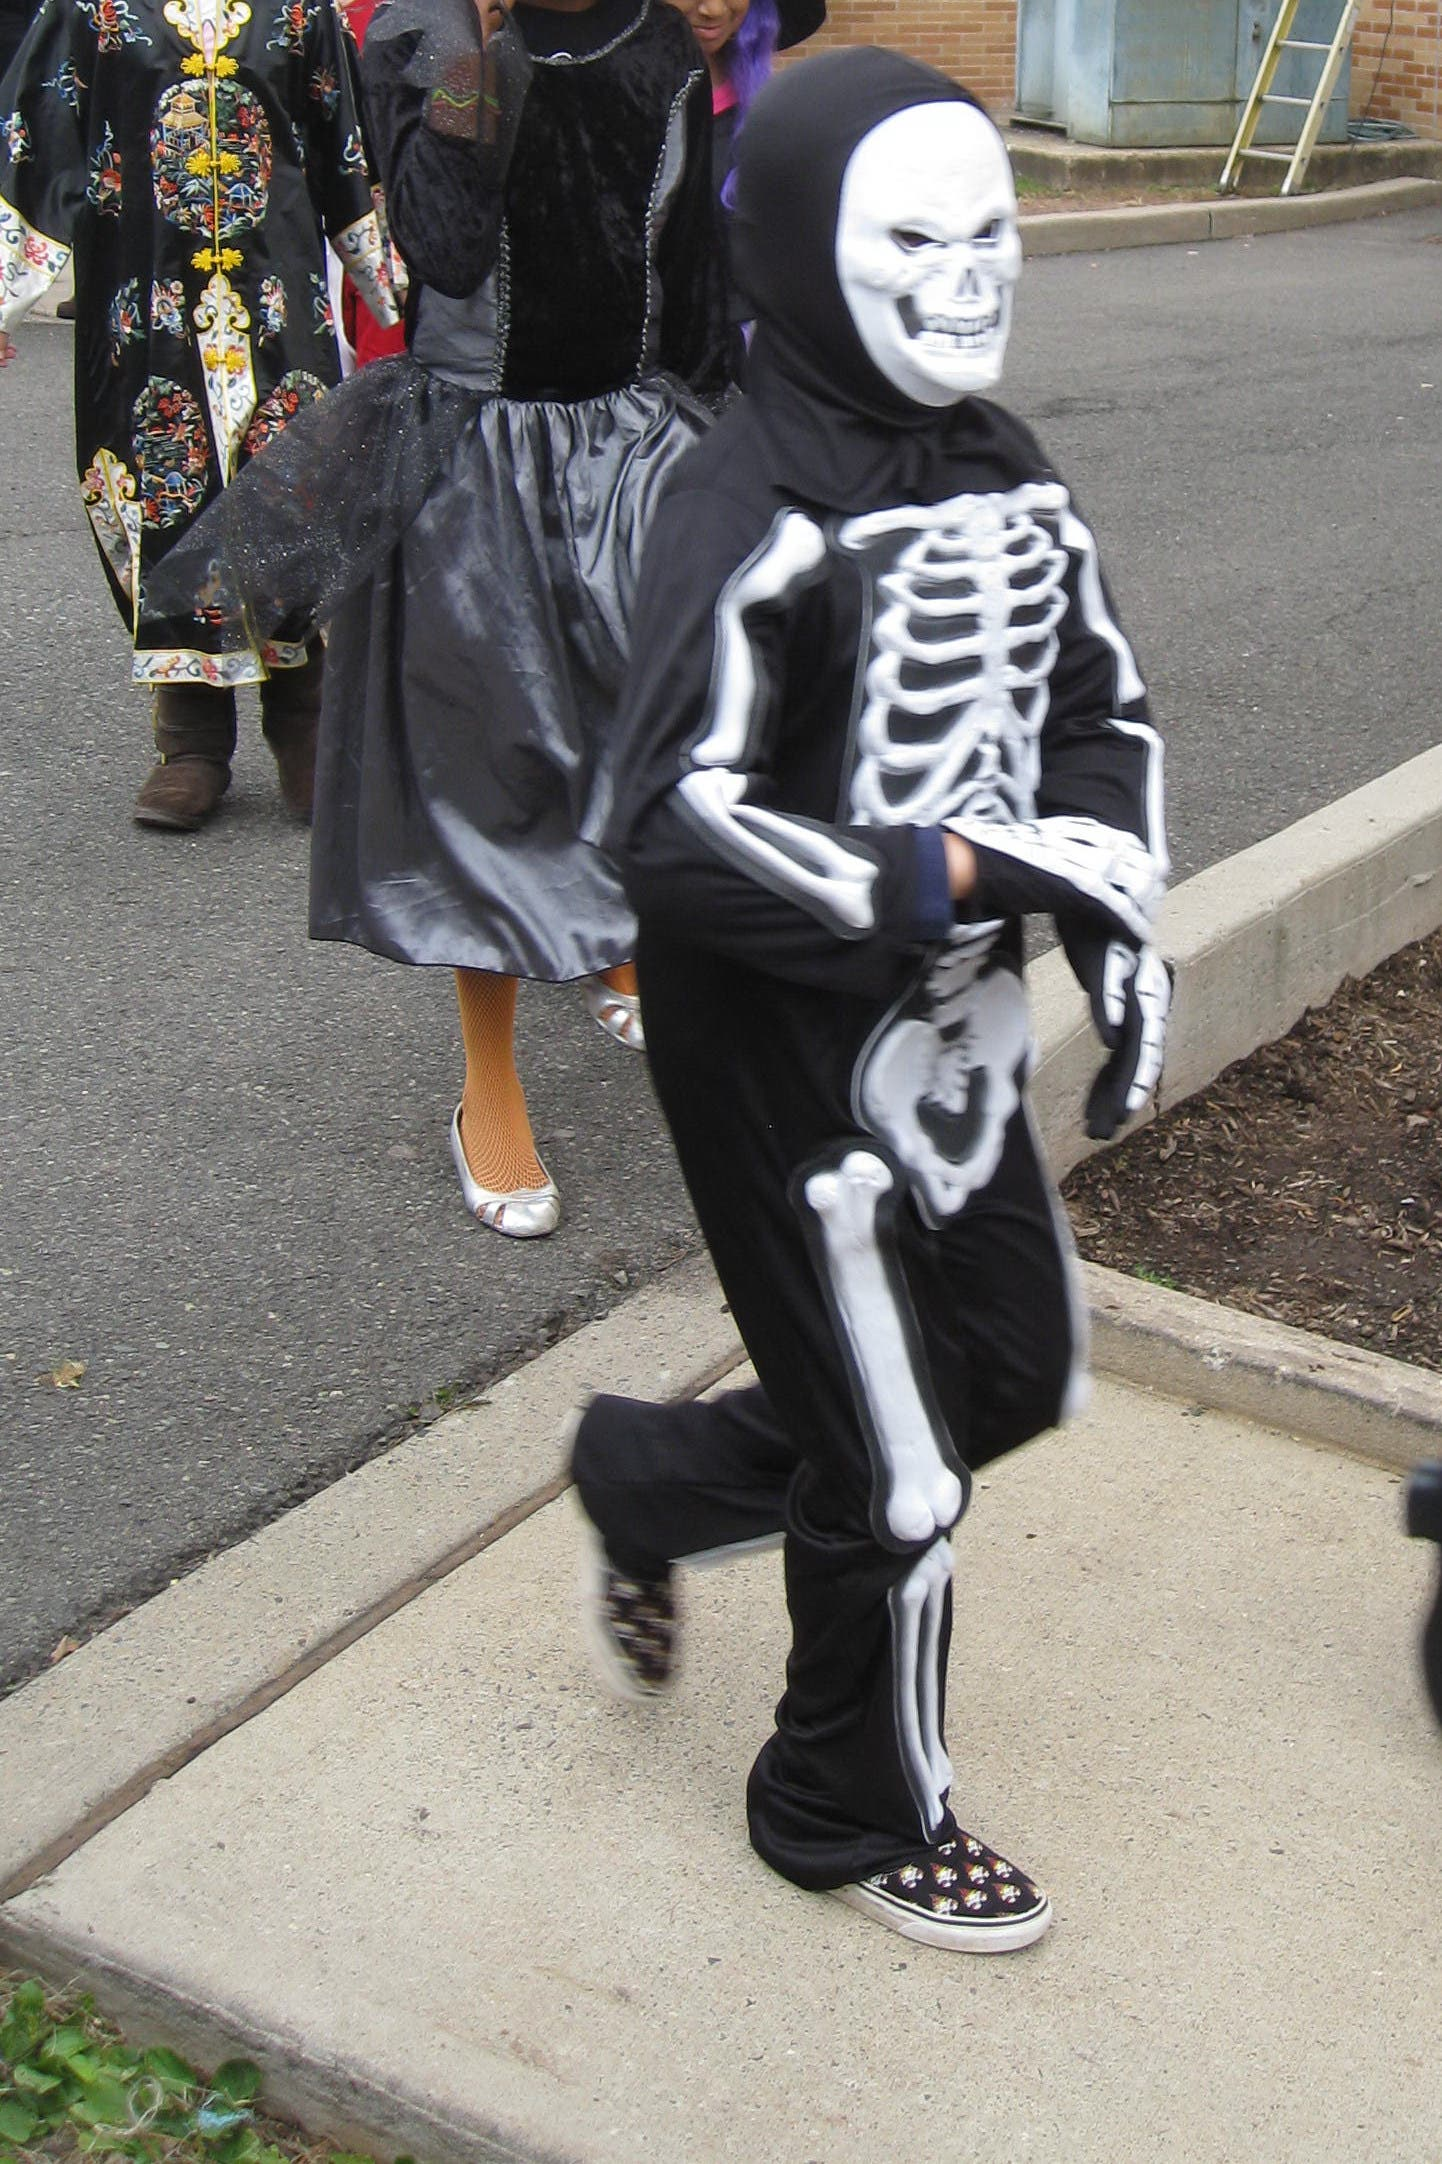 Fanwood Halloween Parade 2020 CANCELLED: Fanwood Scotch Plains to Hold Annual Halloween Parade